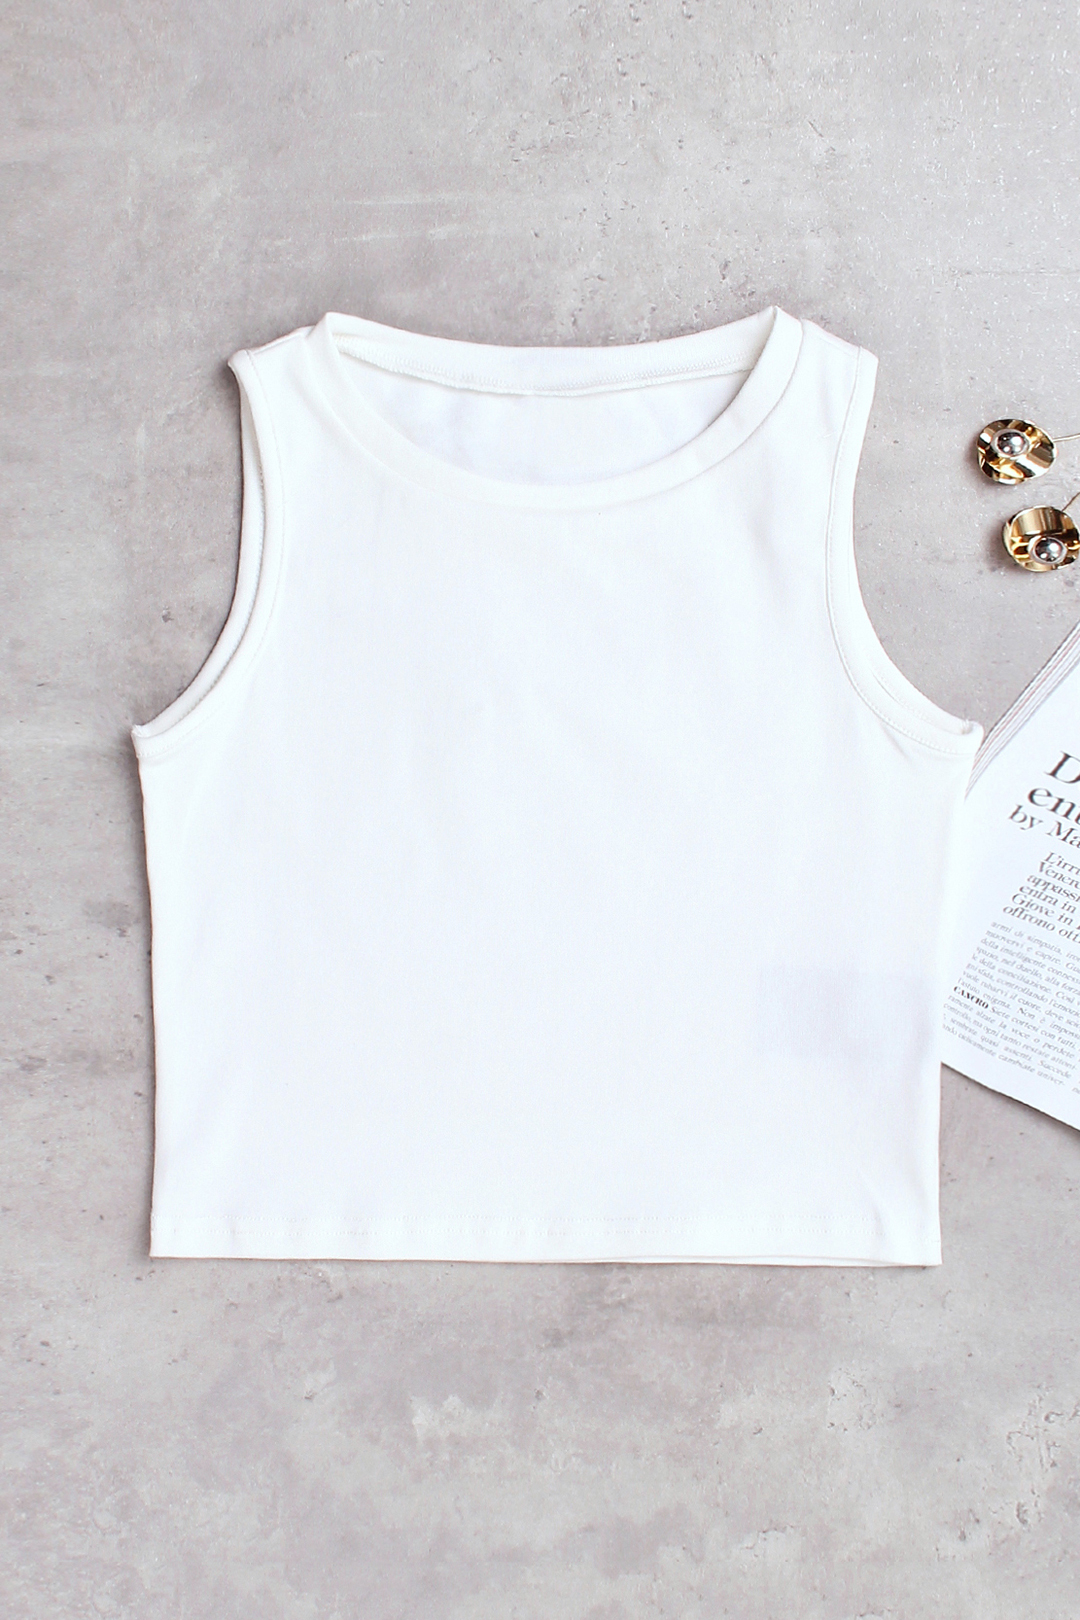 Active Cut Out Round Neck Quick Drying Elastic Vest in White active v neck cut out vest in white